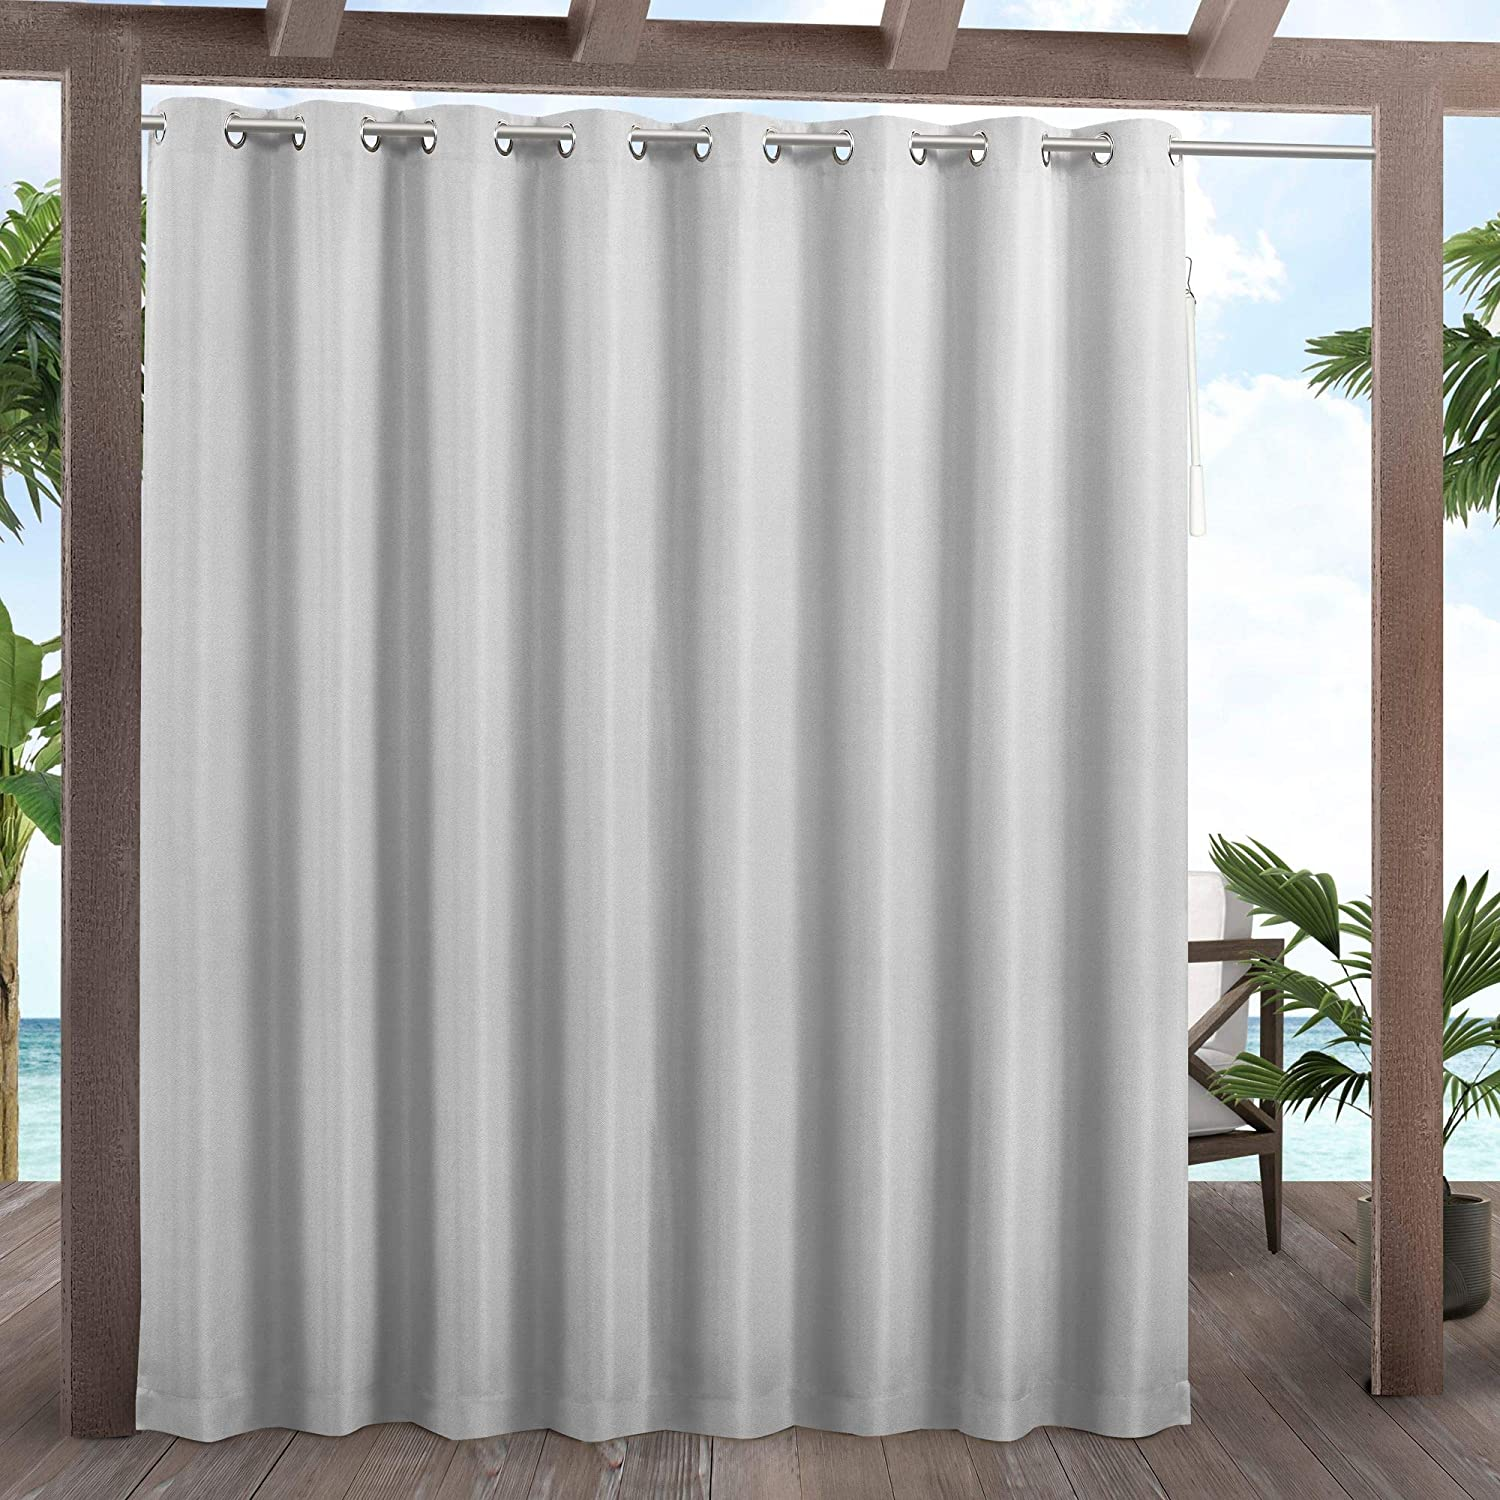 Exclusive Home Curtains Cabana Patio Light Filtering Grommet Top Curtain Panels, 108x84, Cloud Grey,YA012637DSEHC1 020